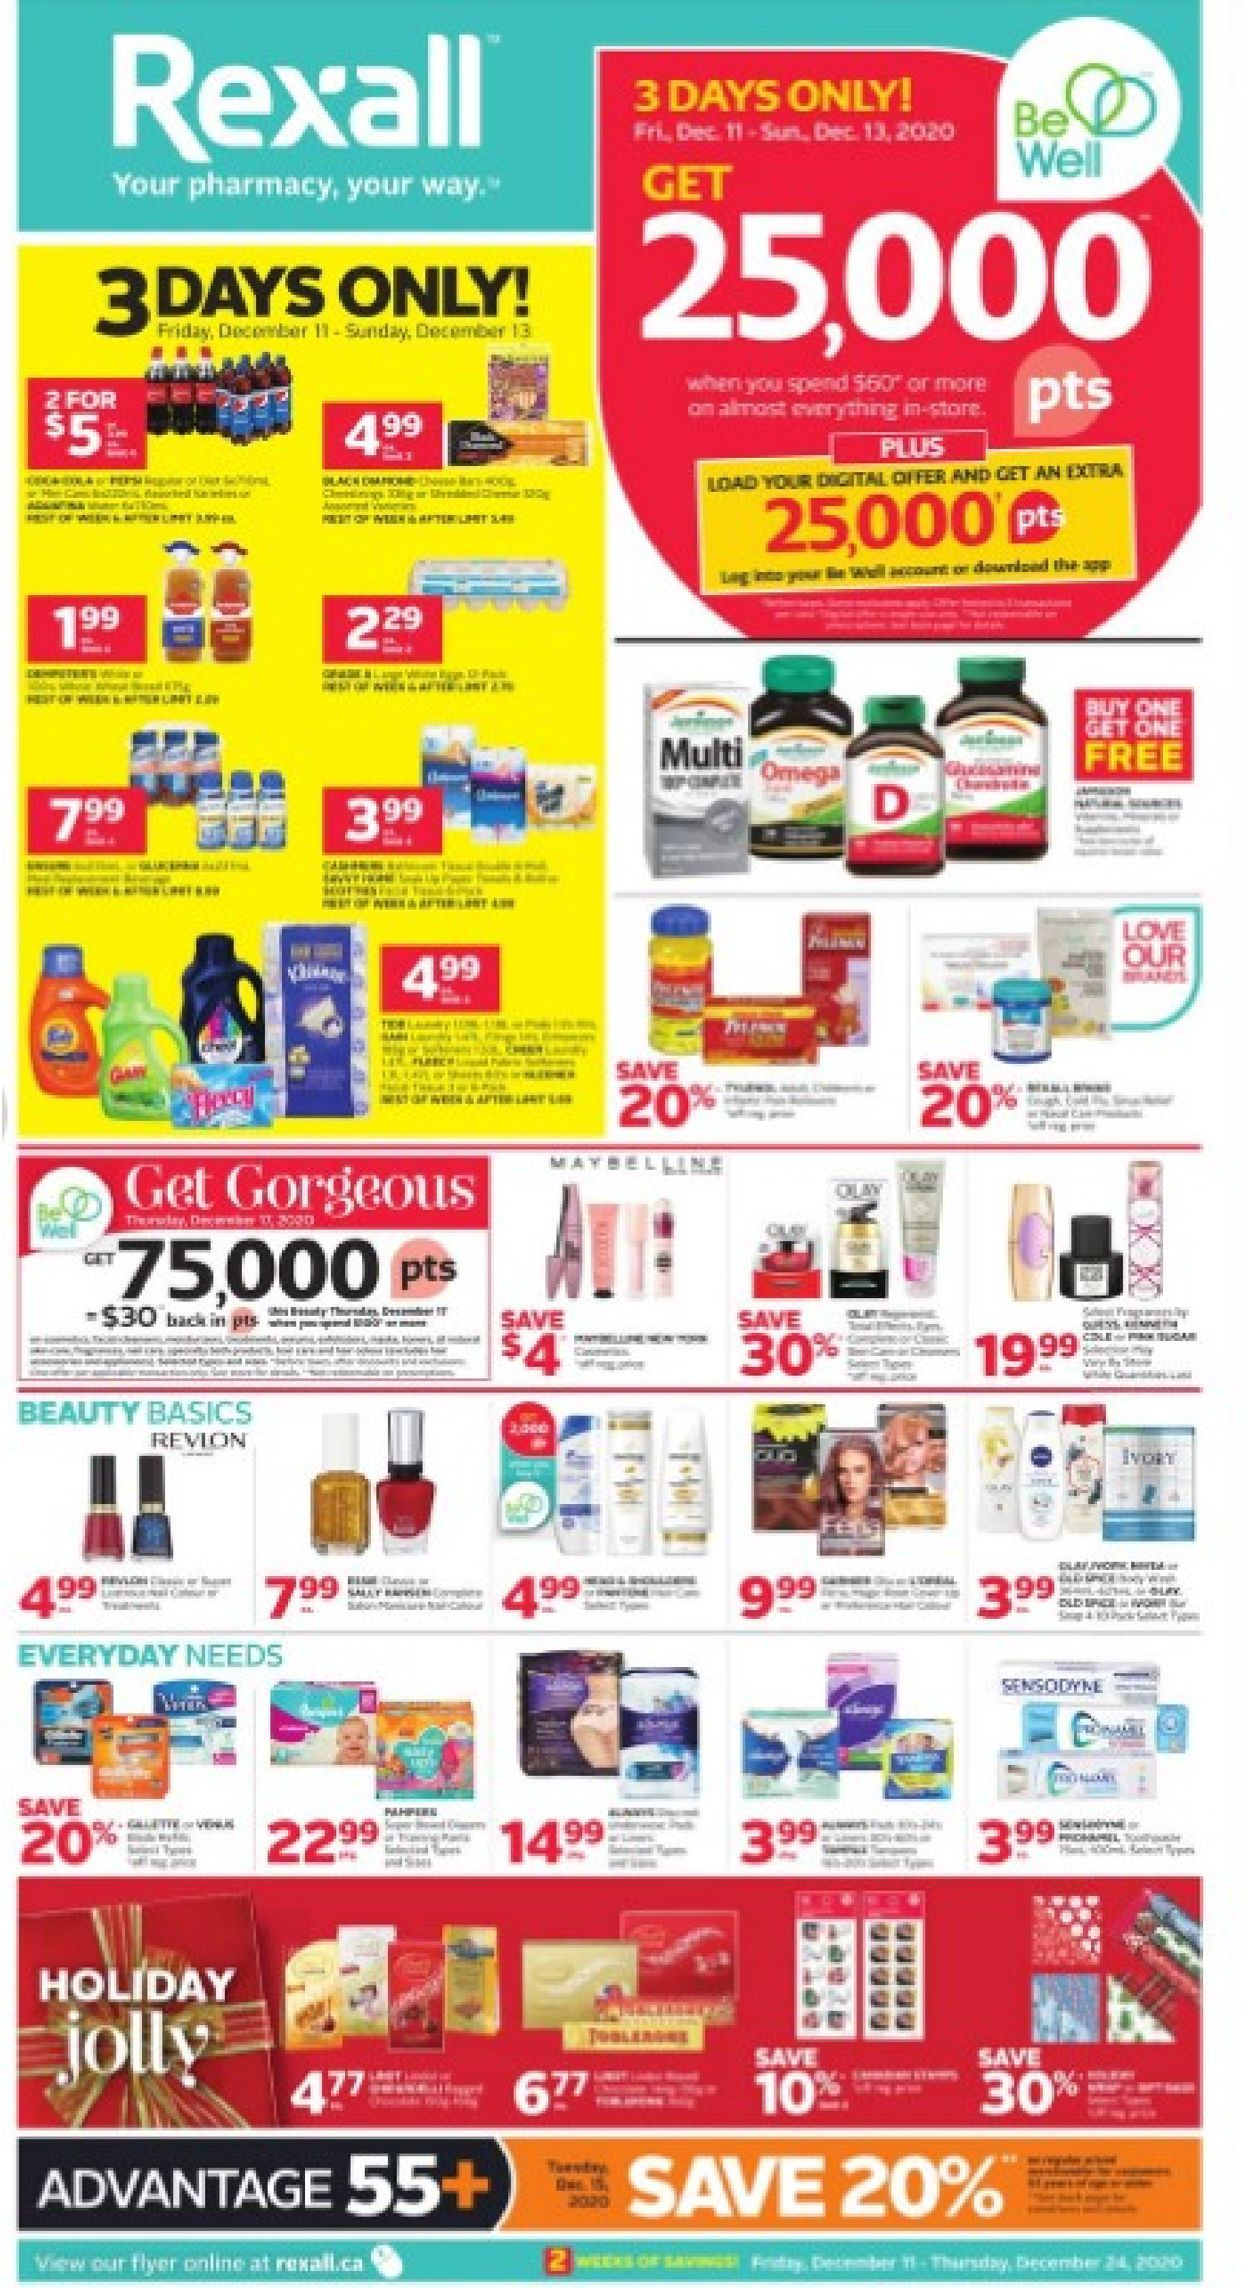 Rexall - Holiday 2020 Flyer - 12/11-12/24/2020